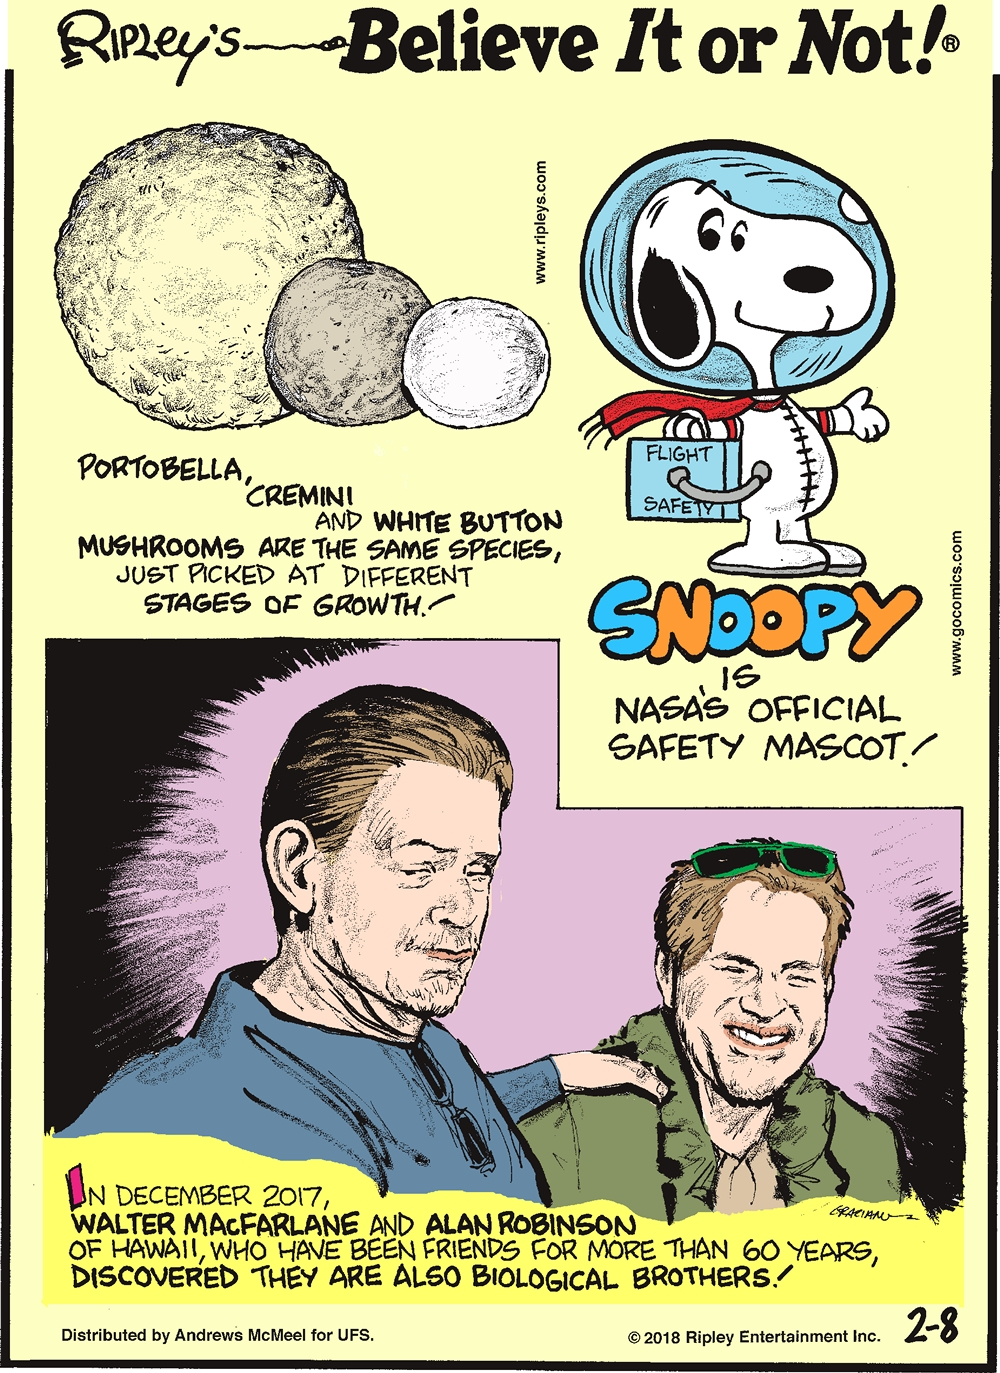 Portobella, cremini and white button mushrooms are the same species, just picked at different stages of growth!-------------------- Snoopy is NASA's official safety mascot!-------------------- In December 2017, Walter MacFarlane and Alan Robinson of Hawaii, who have been friends for more than 60 years, discovered they are also biological brothers!